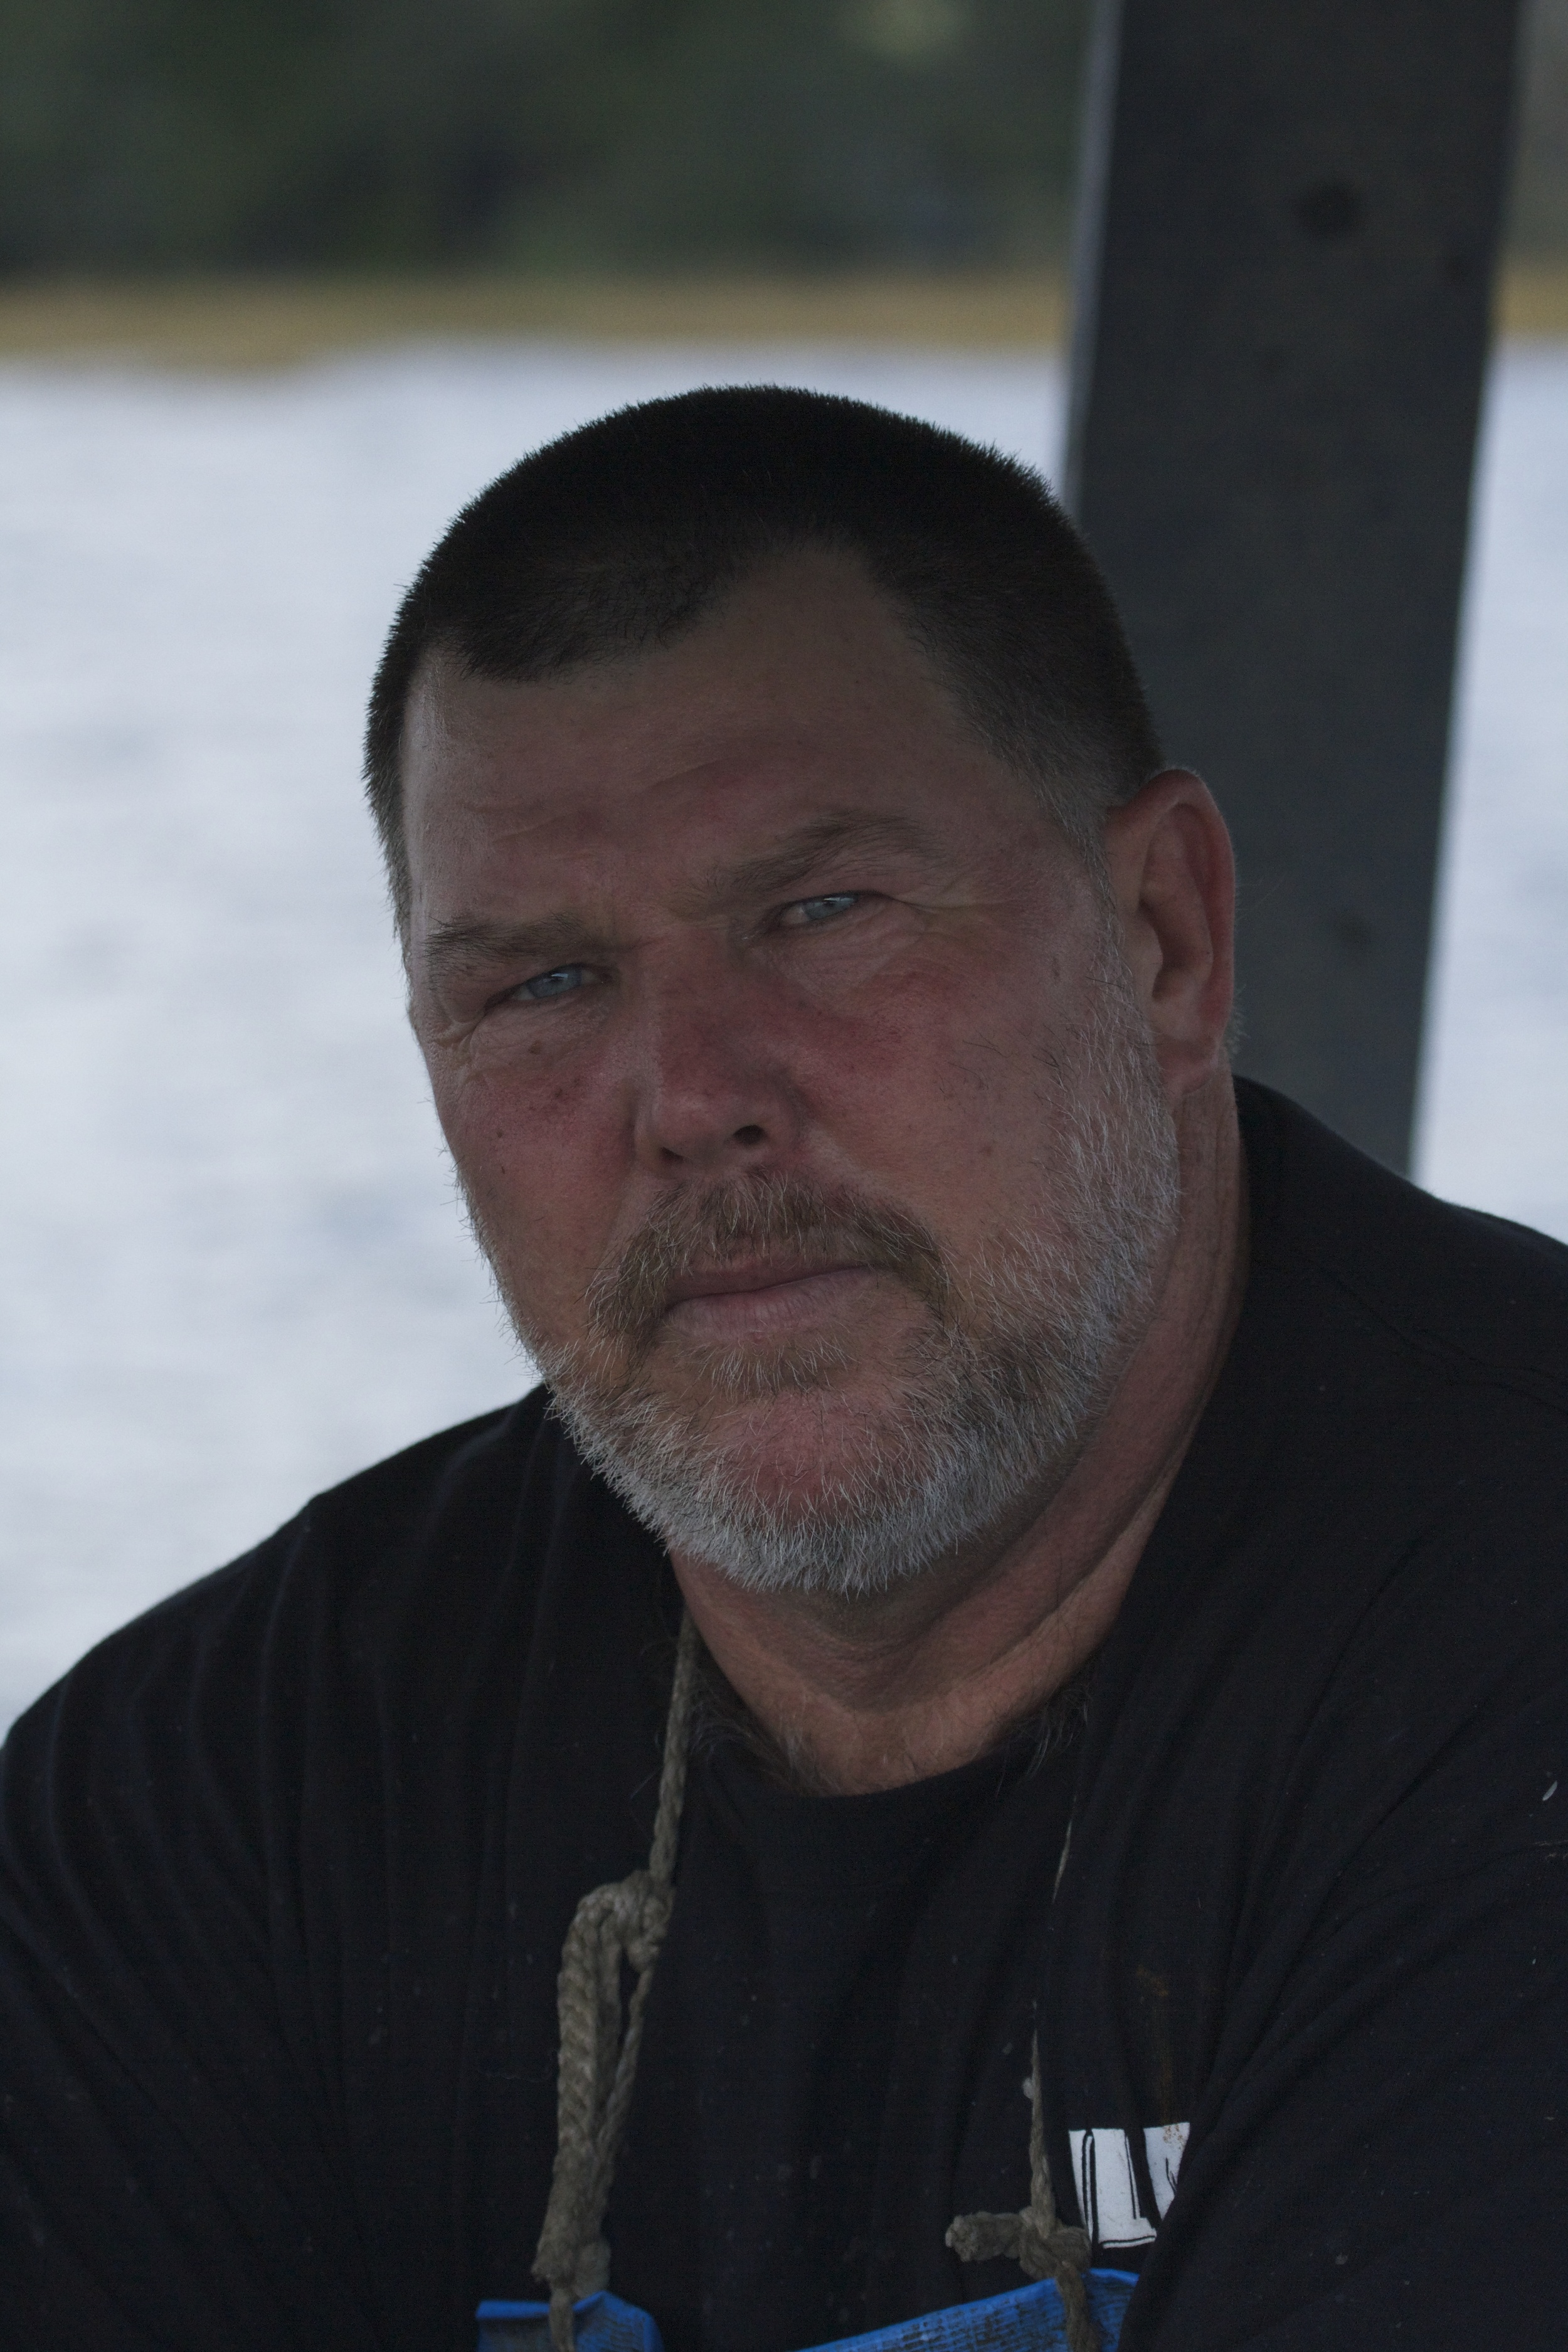 Tommy has been crab fishing all his adult life. He worries that over regulation may kill the crab fishing trade though.